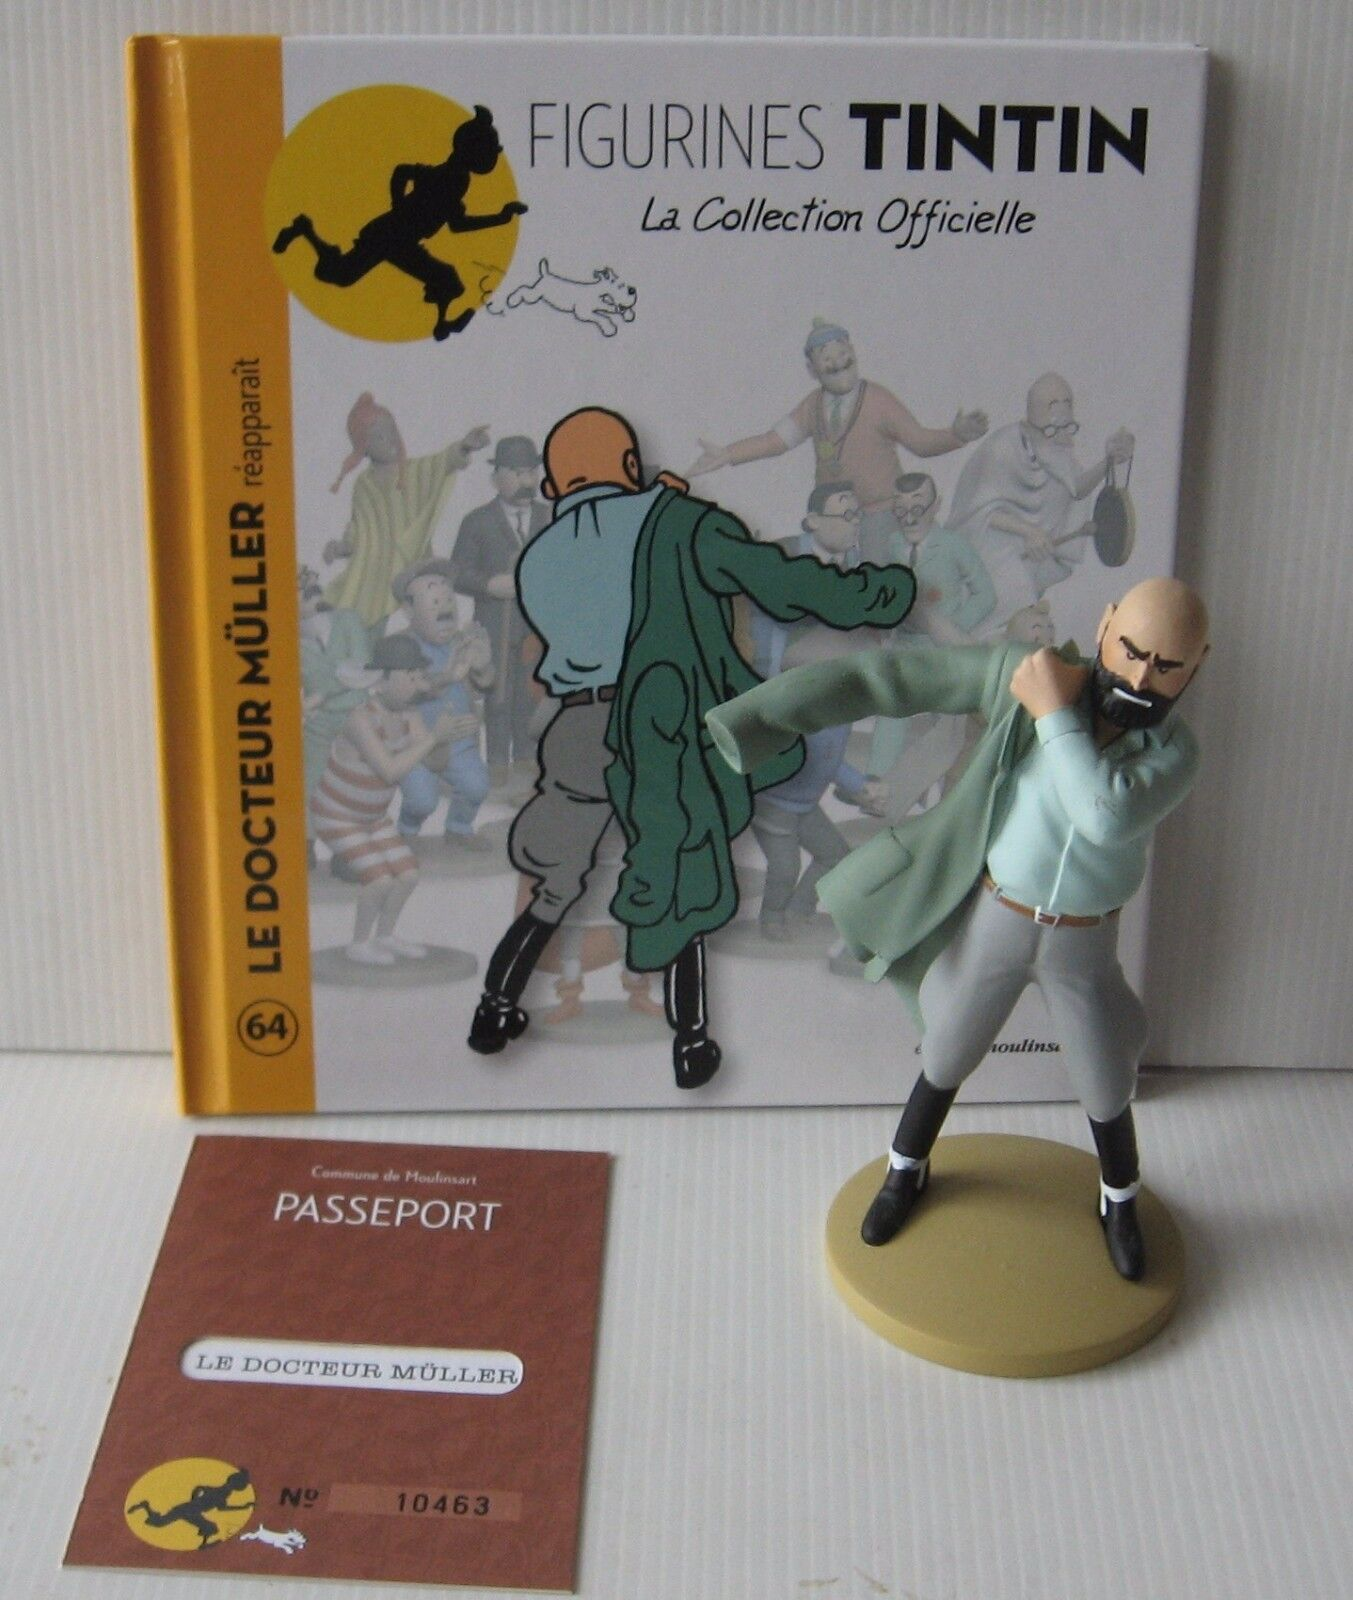 FIGURINES RESIN TINTIN DOCTOR MULLER REAPPEARS NO.64+CERTIFICATE+BOOKLET 2013